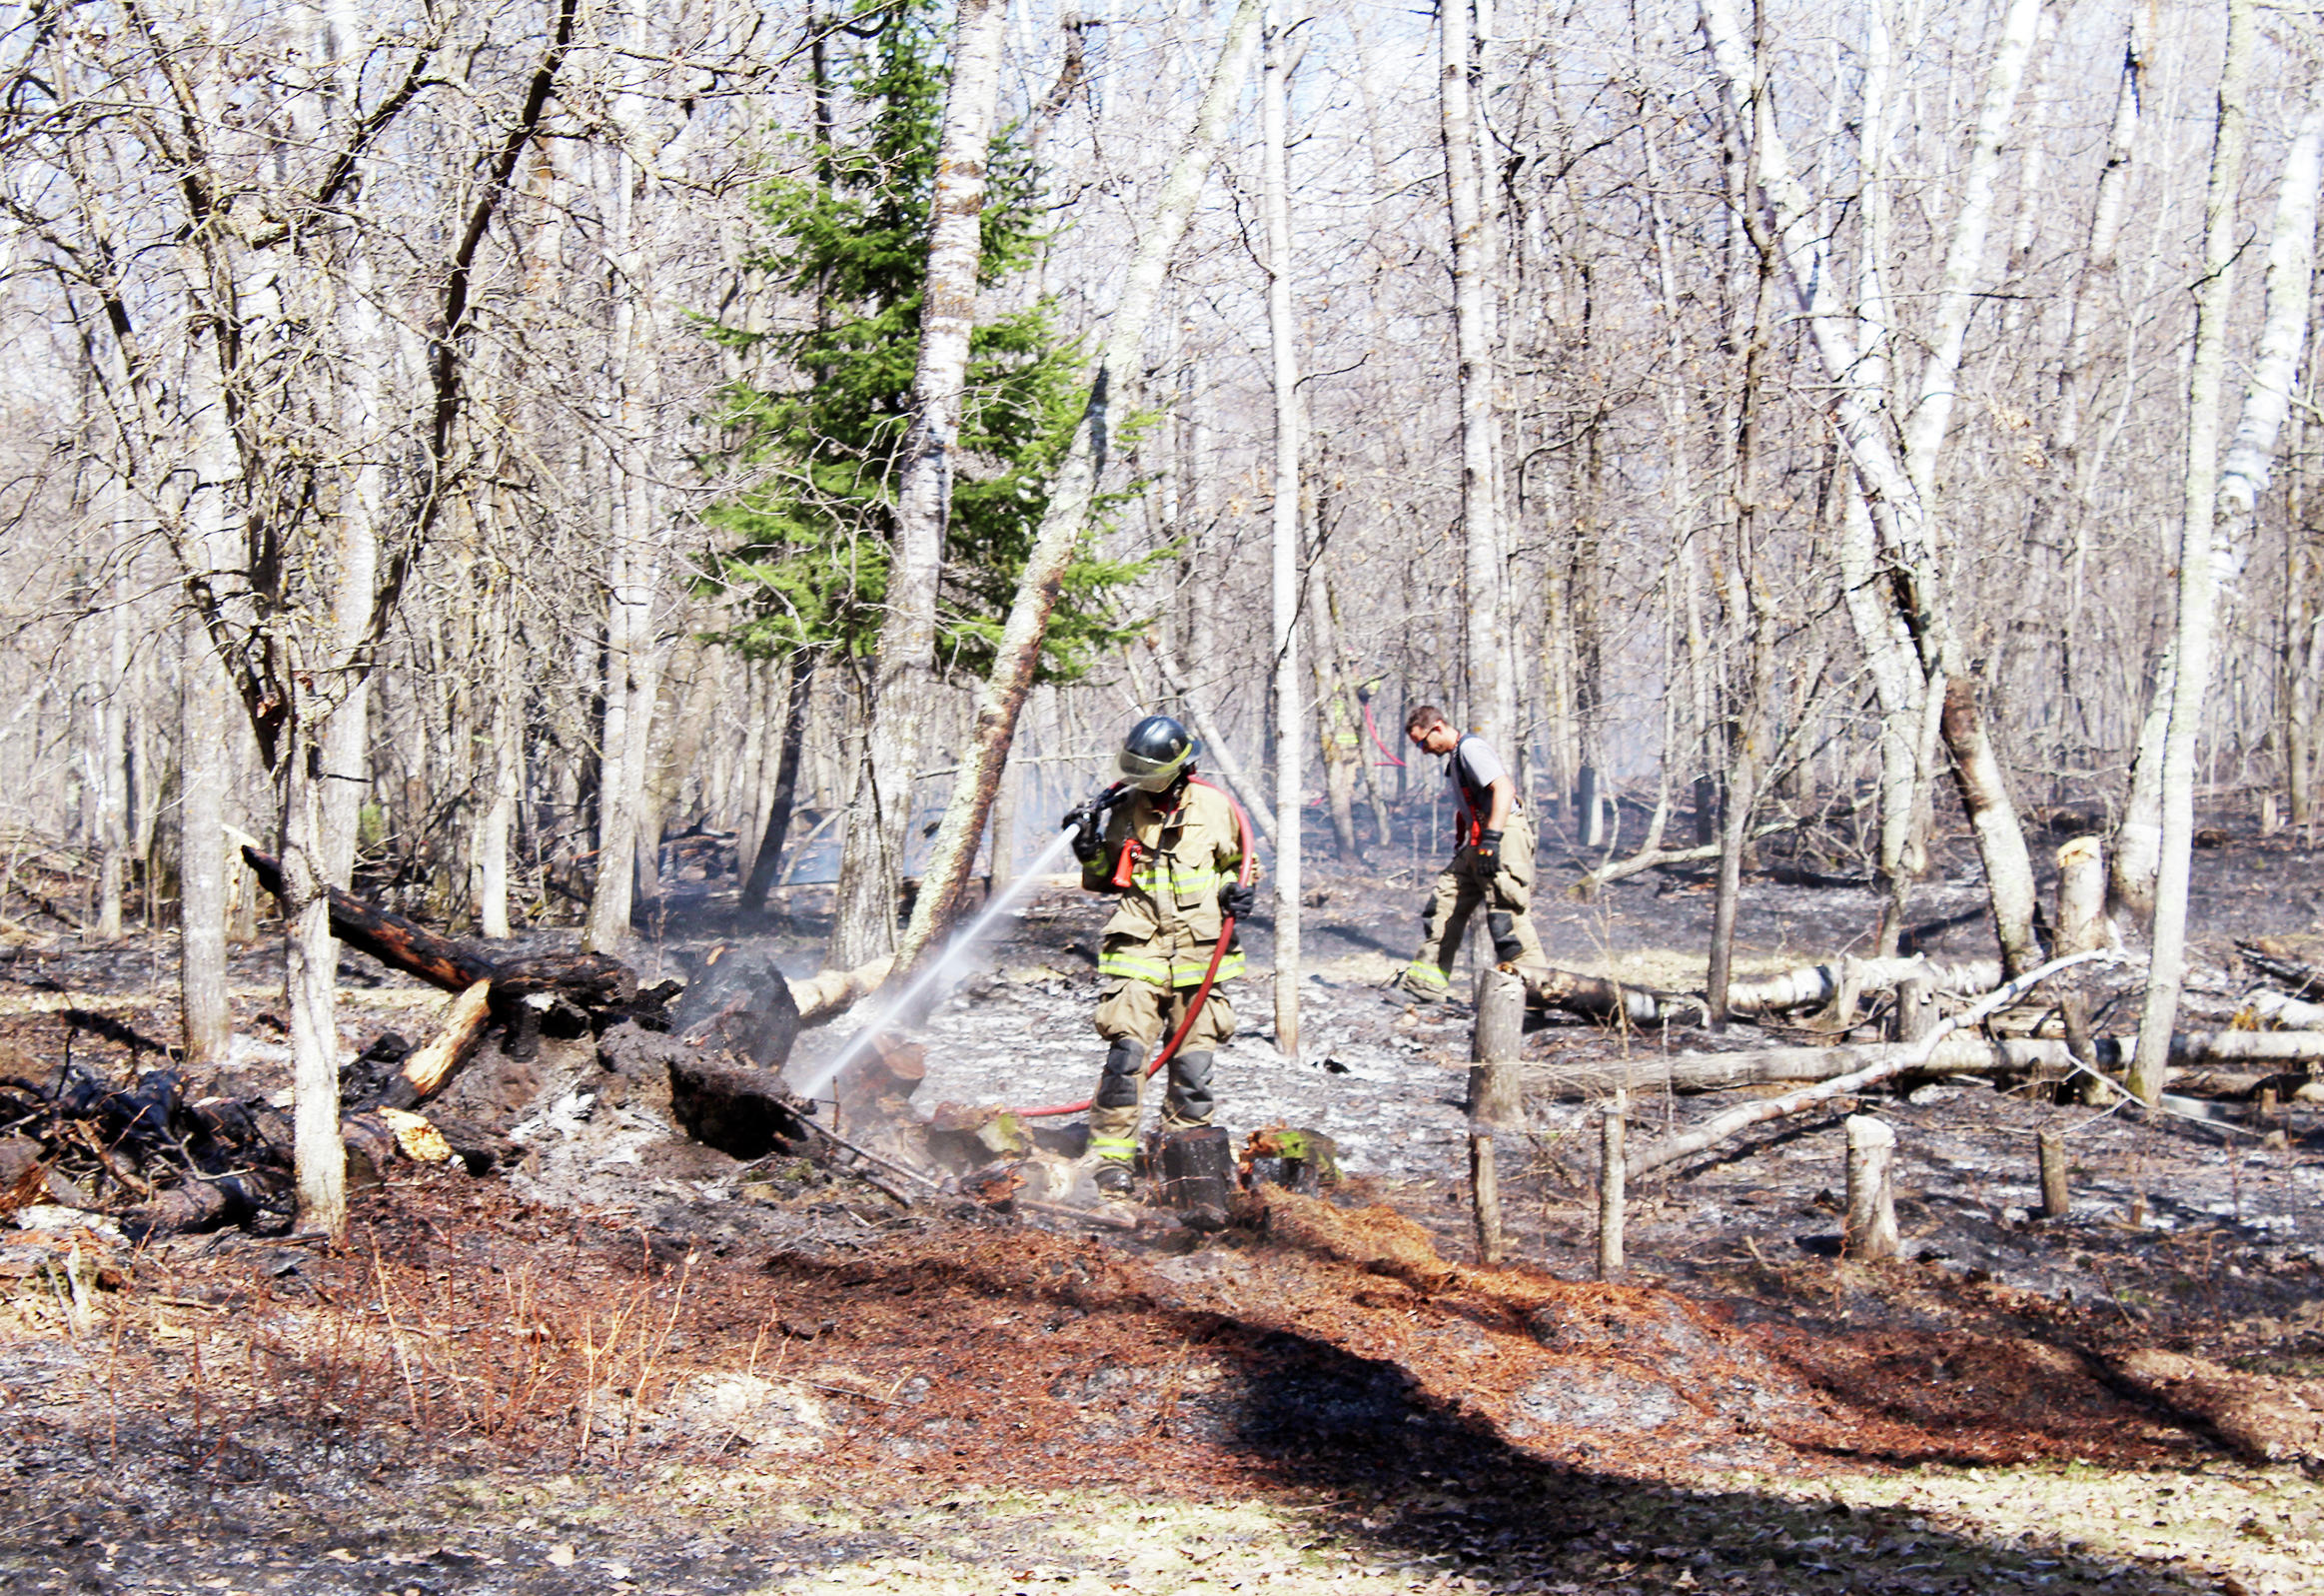 A smoldering brush pile from last December reignited on Thursday and spread over one acre, according to the Park Rapids Fire Department. (Shannon Geisen/Enterprise)